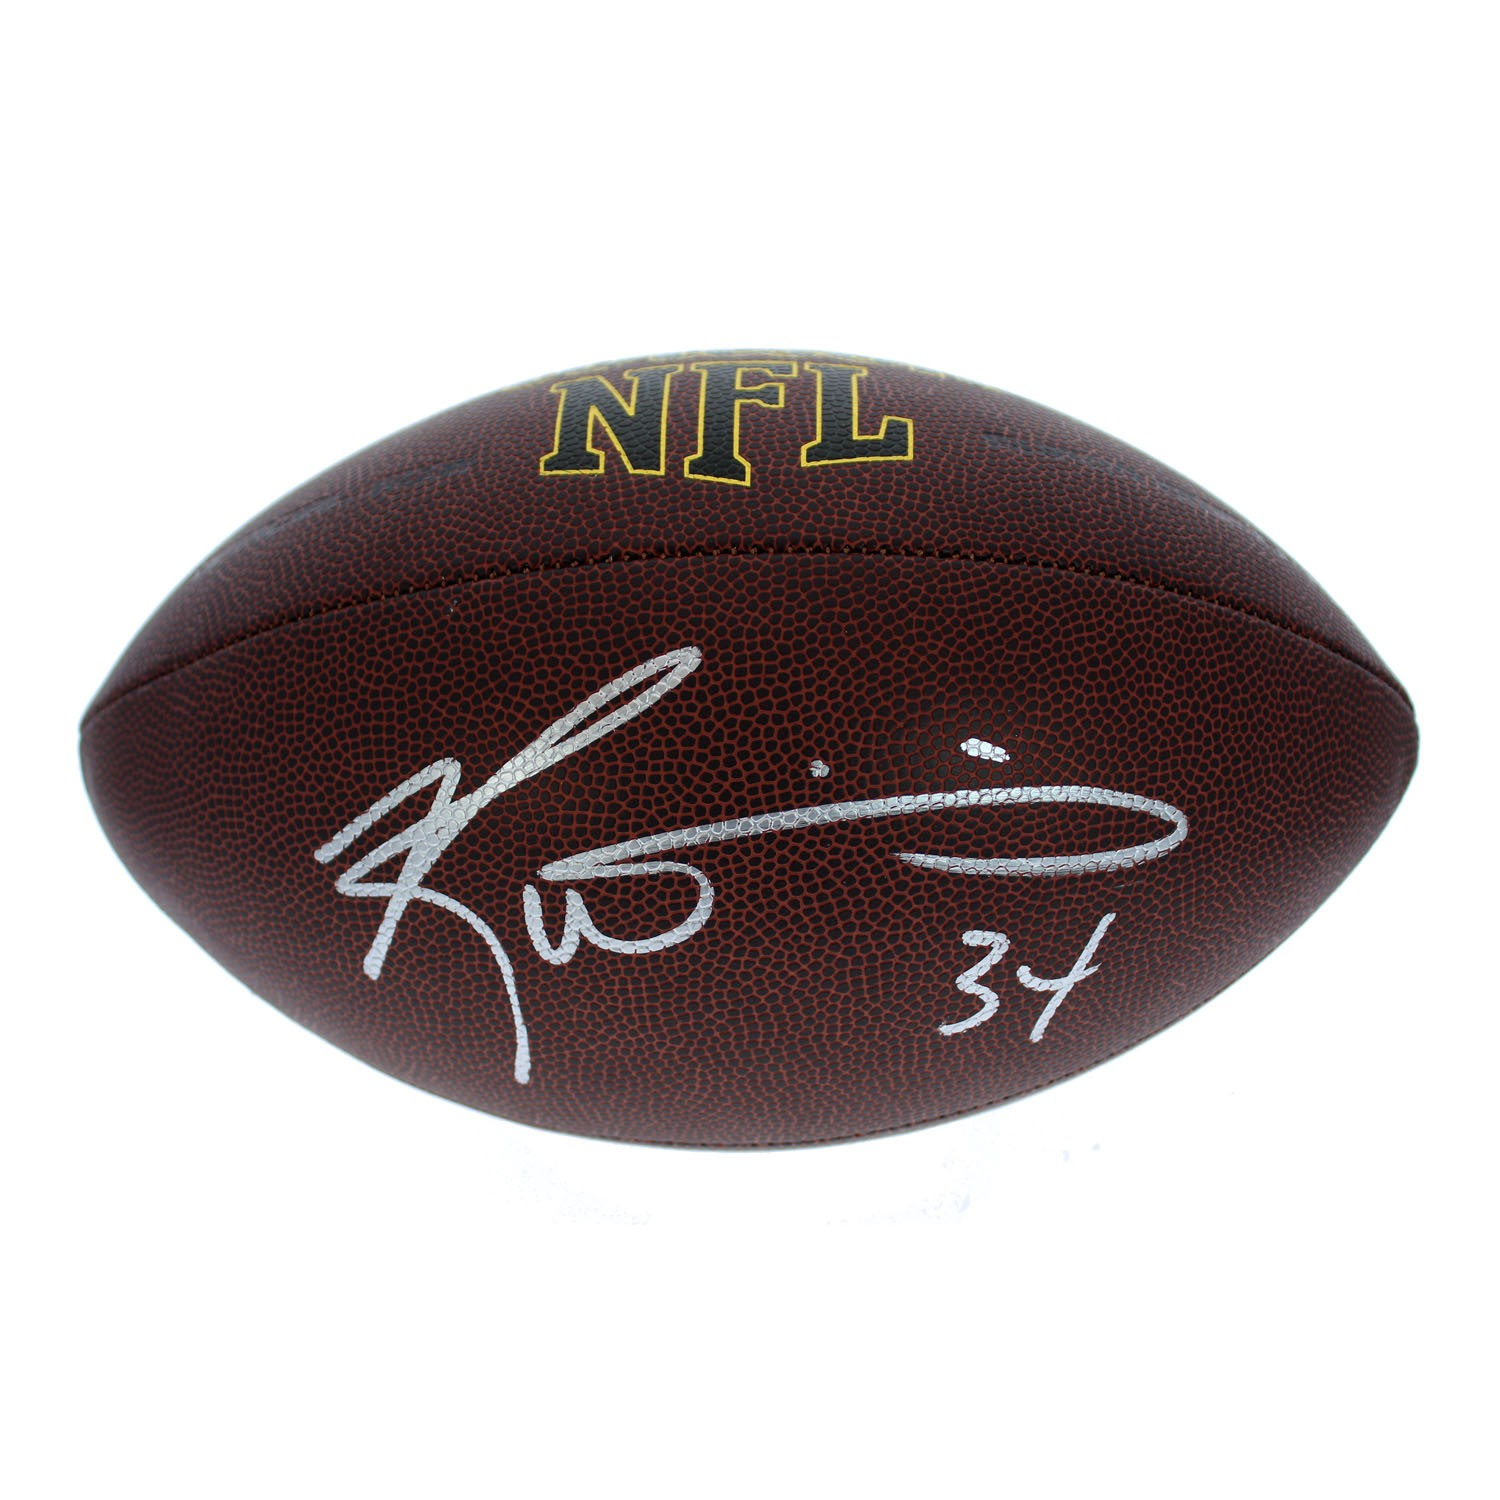 Ricky Williams Autographed Signed Wilson NFL Super Grip Football - JSA  Certified Authentic 1979c36ac